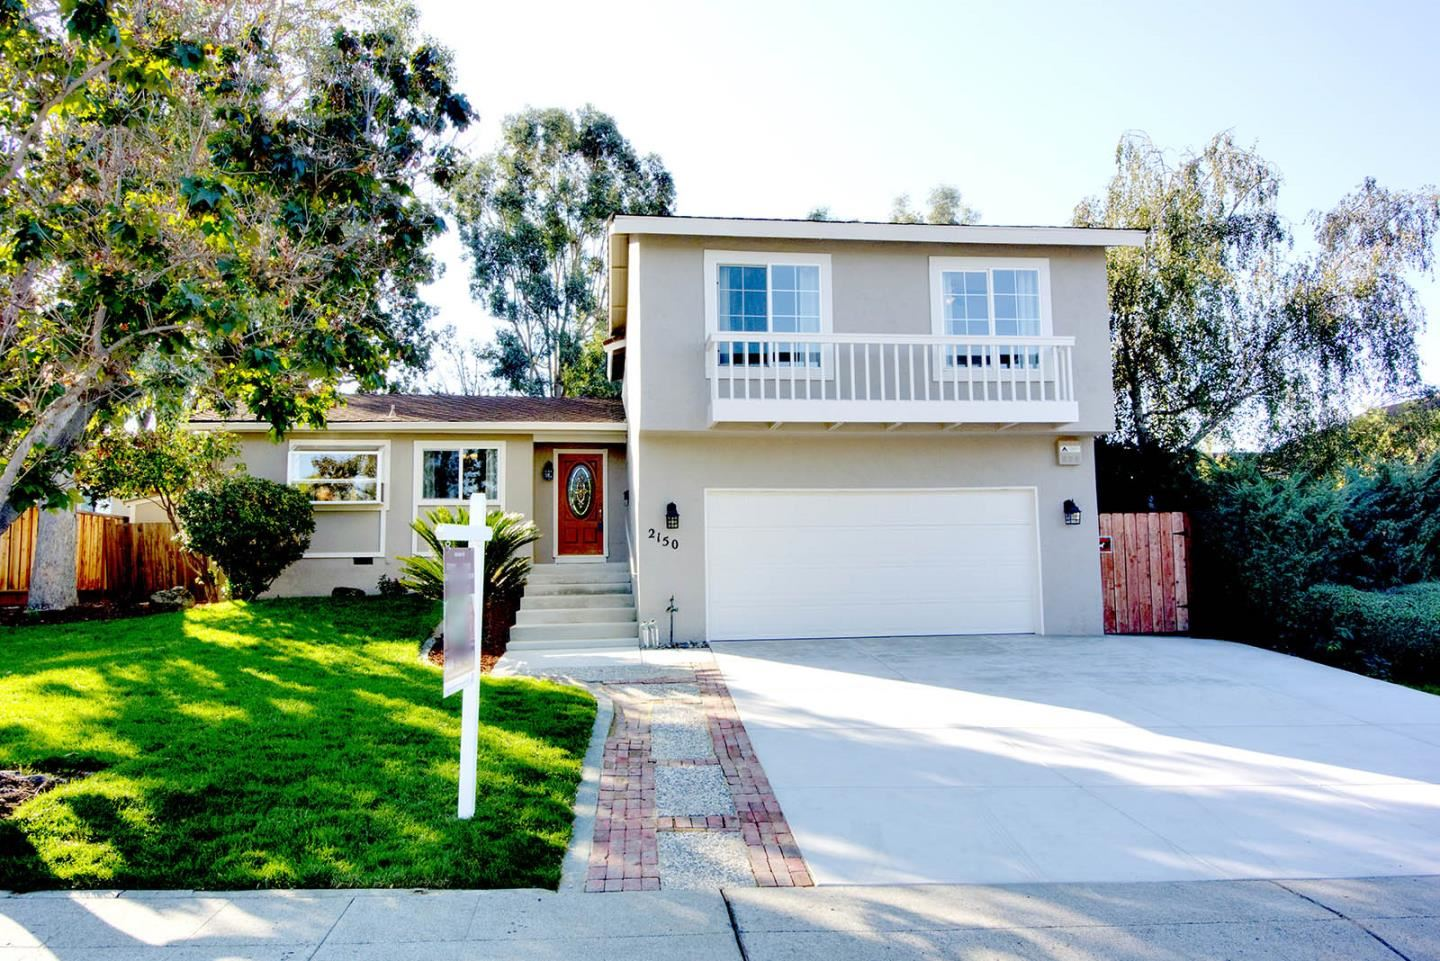 Photo for 2150 Lacey DR, MILPITAS, CA 95035 (MLS # ML81812924)